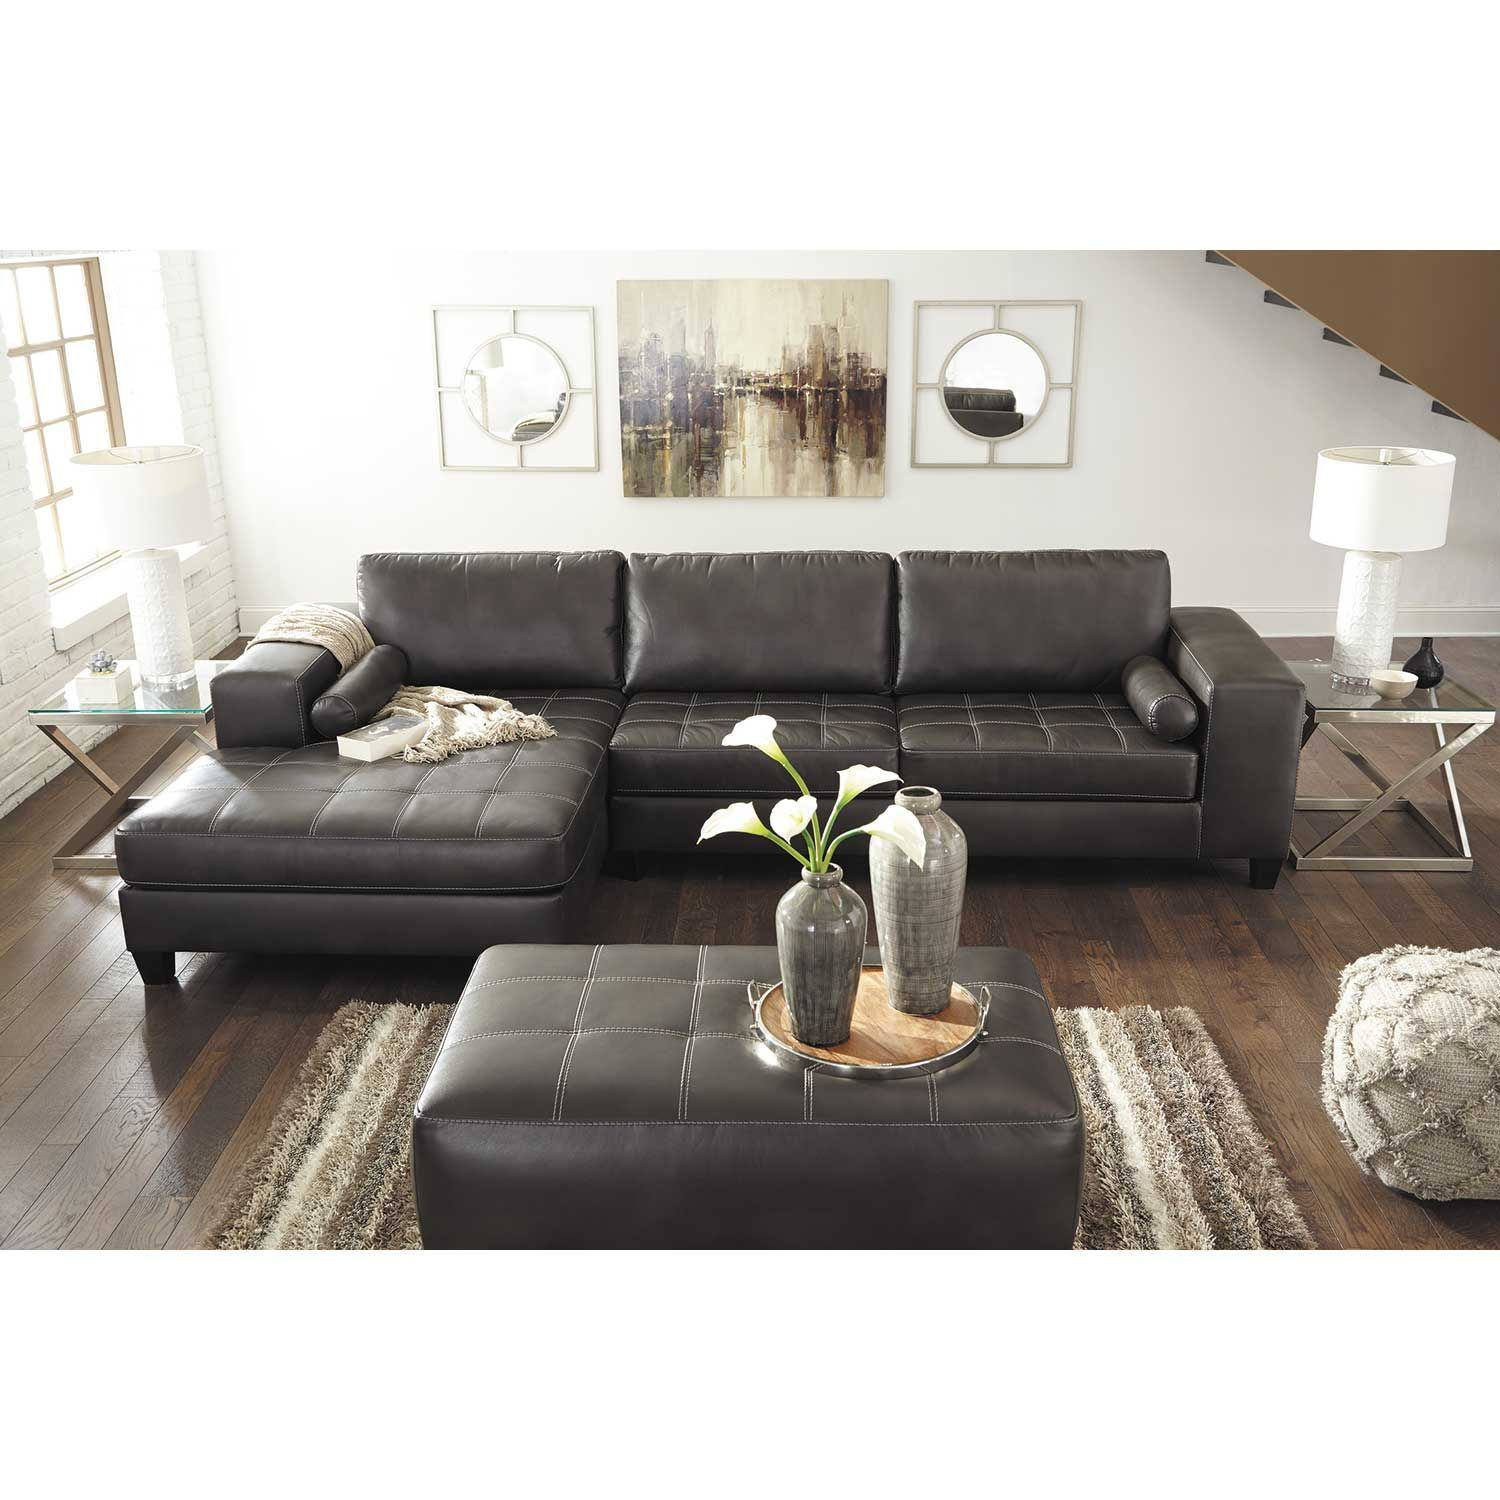 Nokomis 2 Piece Sectional With Raf Chaise 8770117/8770166 With Avery 2 Piece Sectionals With Raf Armless Chaise (View 15 of 15)